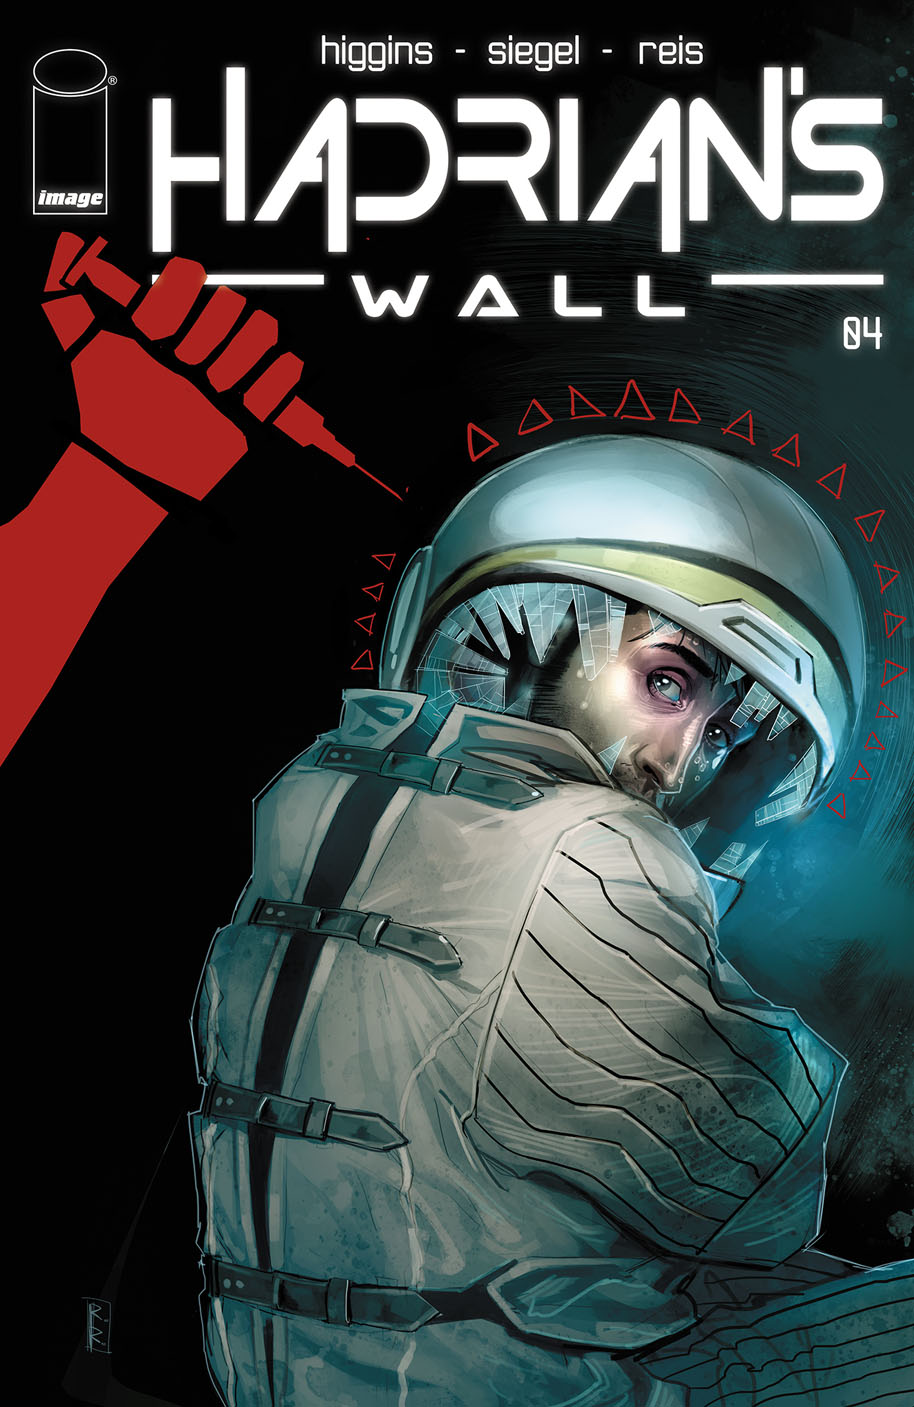 Hadrianswall04_cover_final